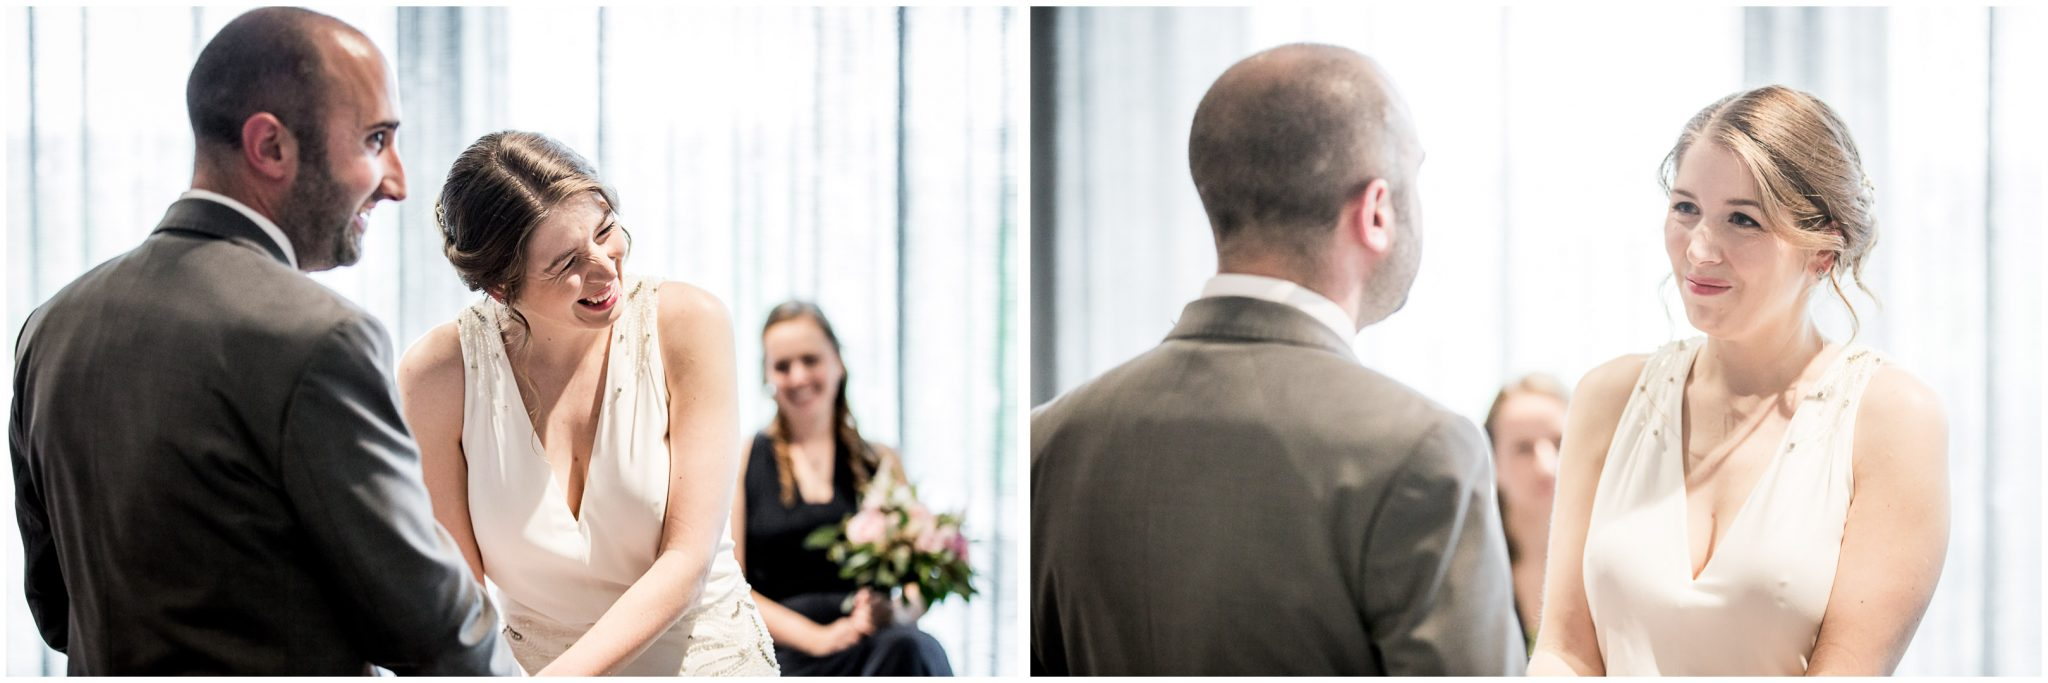 Bride and groom laughing during marriage ceremony making of vows